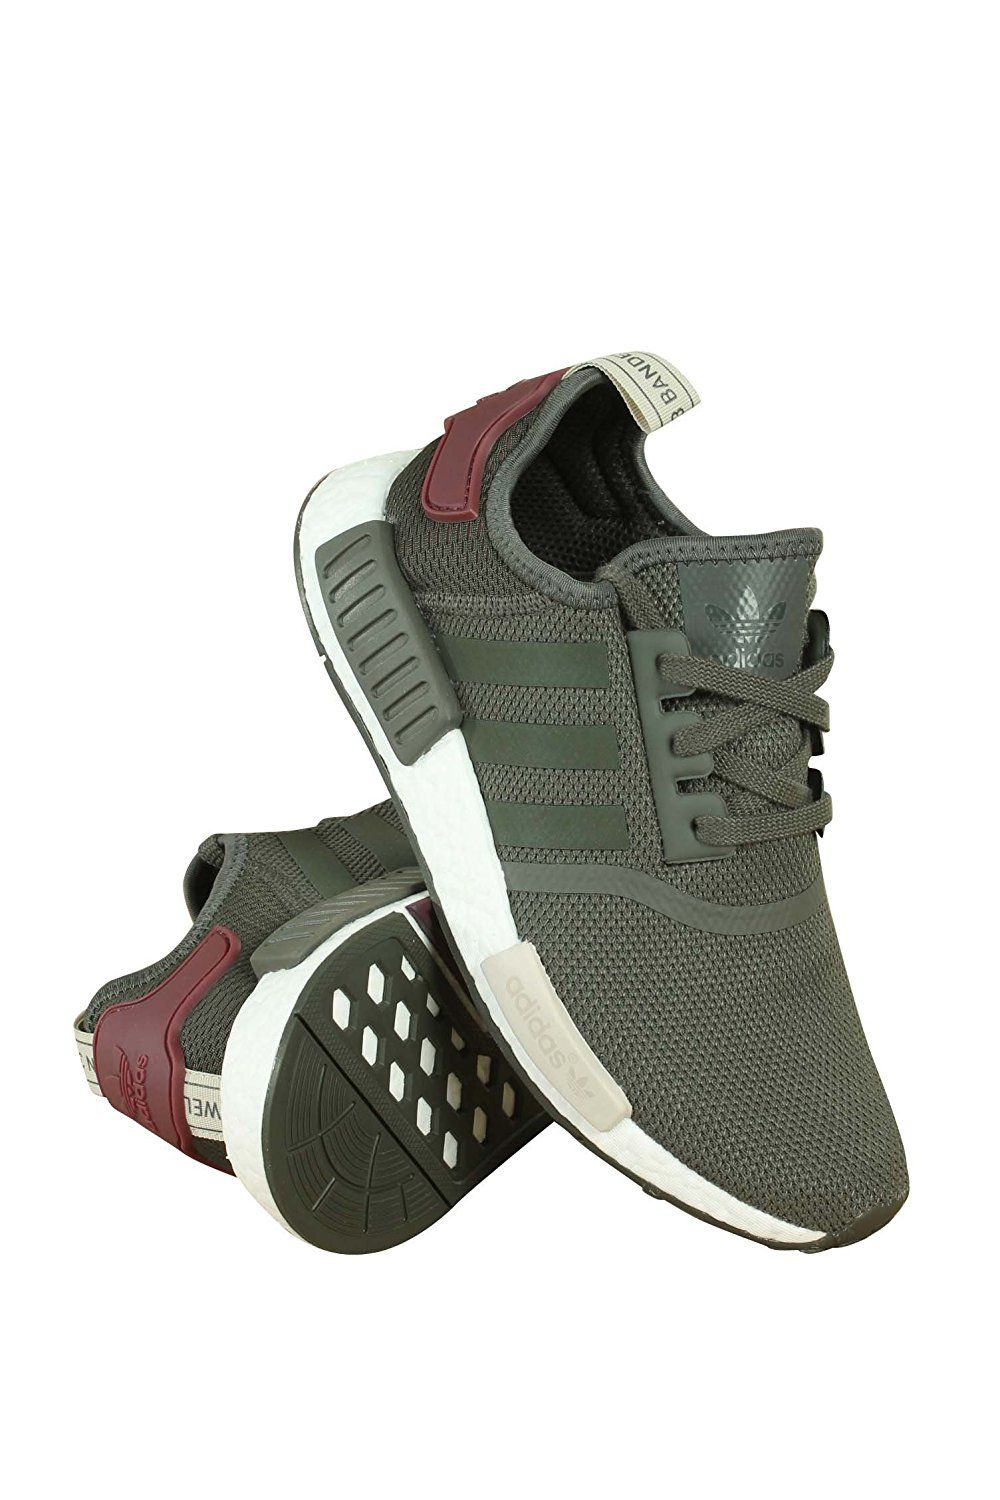 new arrival 14f9c c5f2a Amazon.com  NMD R1 W Ladies in Utility GreenMaroon by Adidas, 8  Running